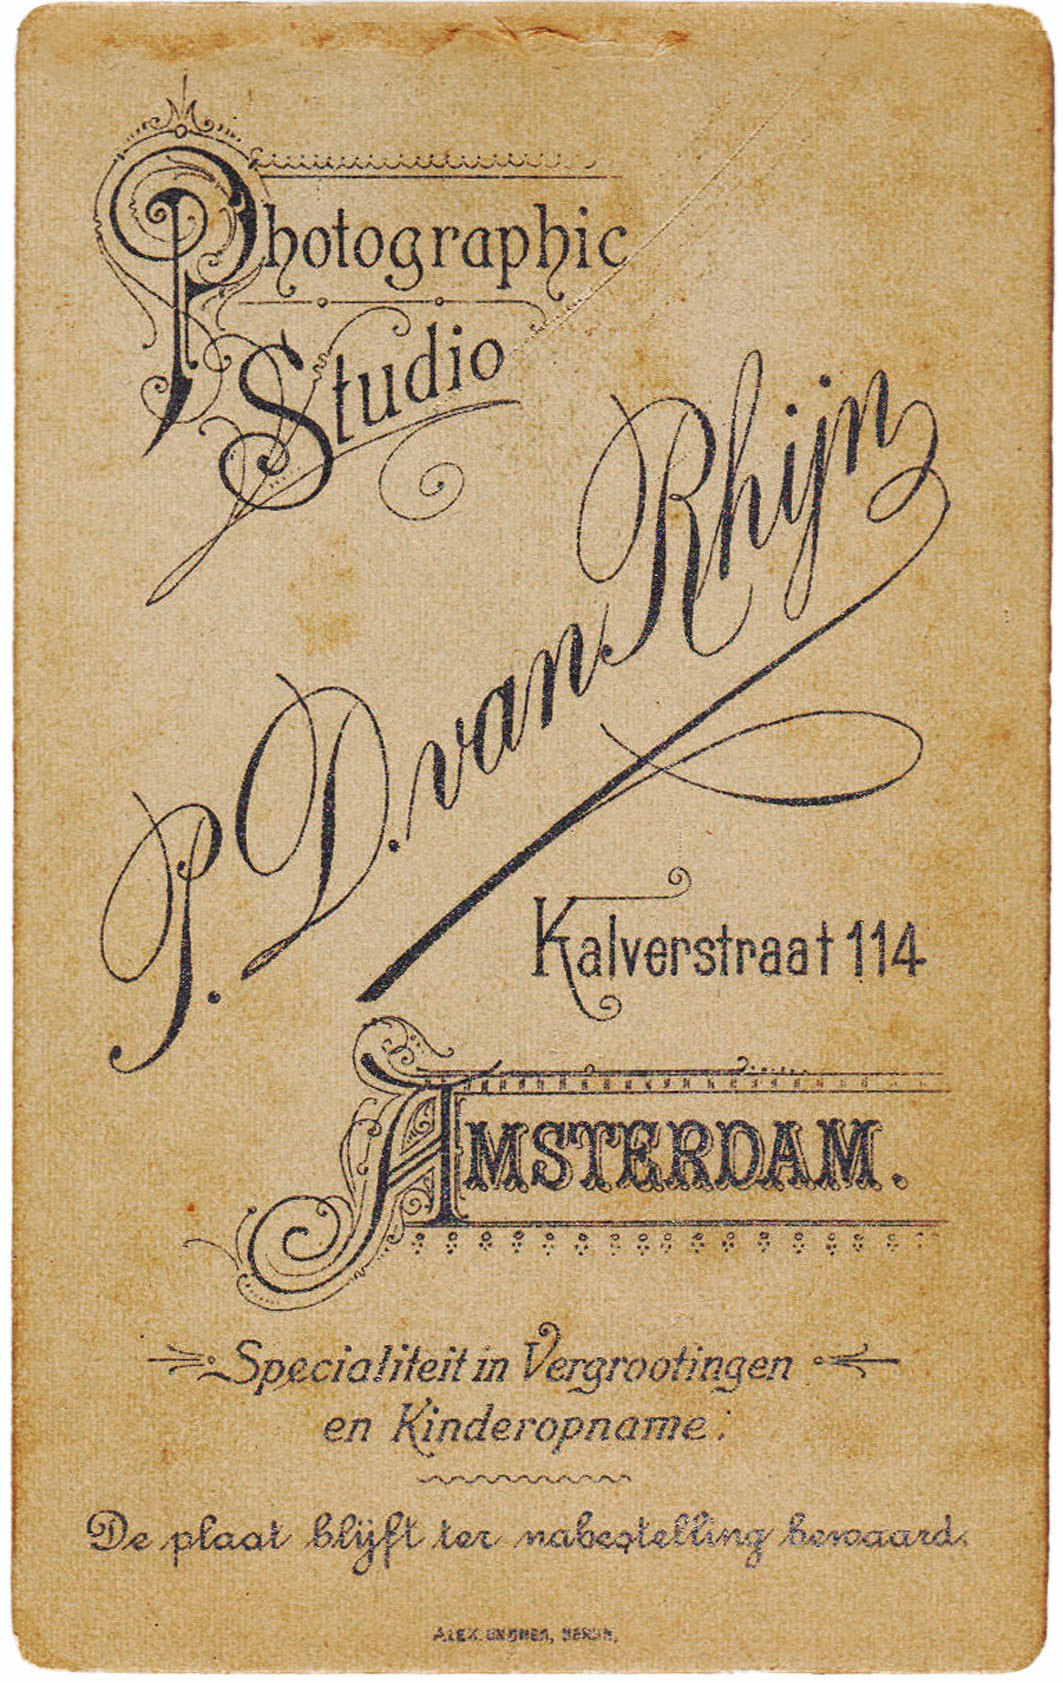 Photographic Studio van Rhijn